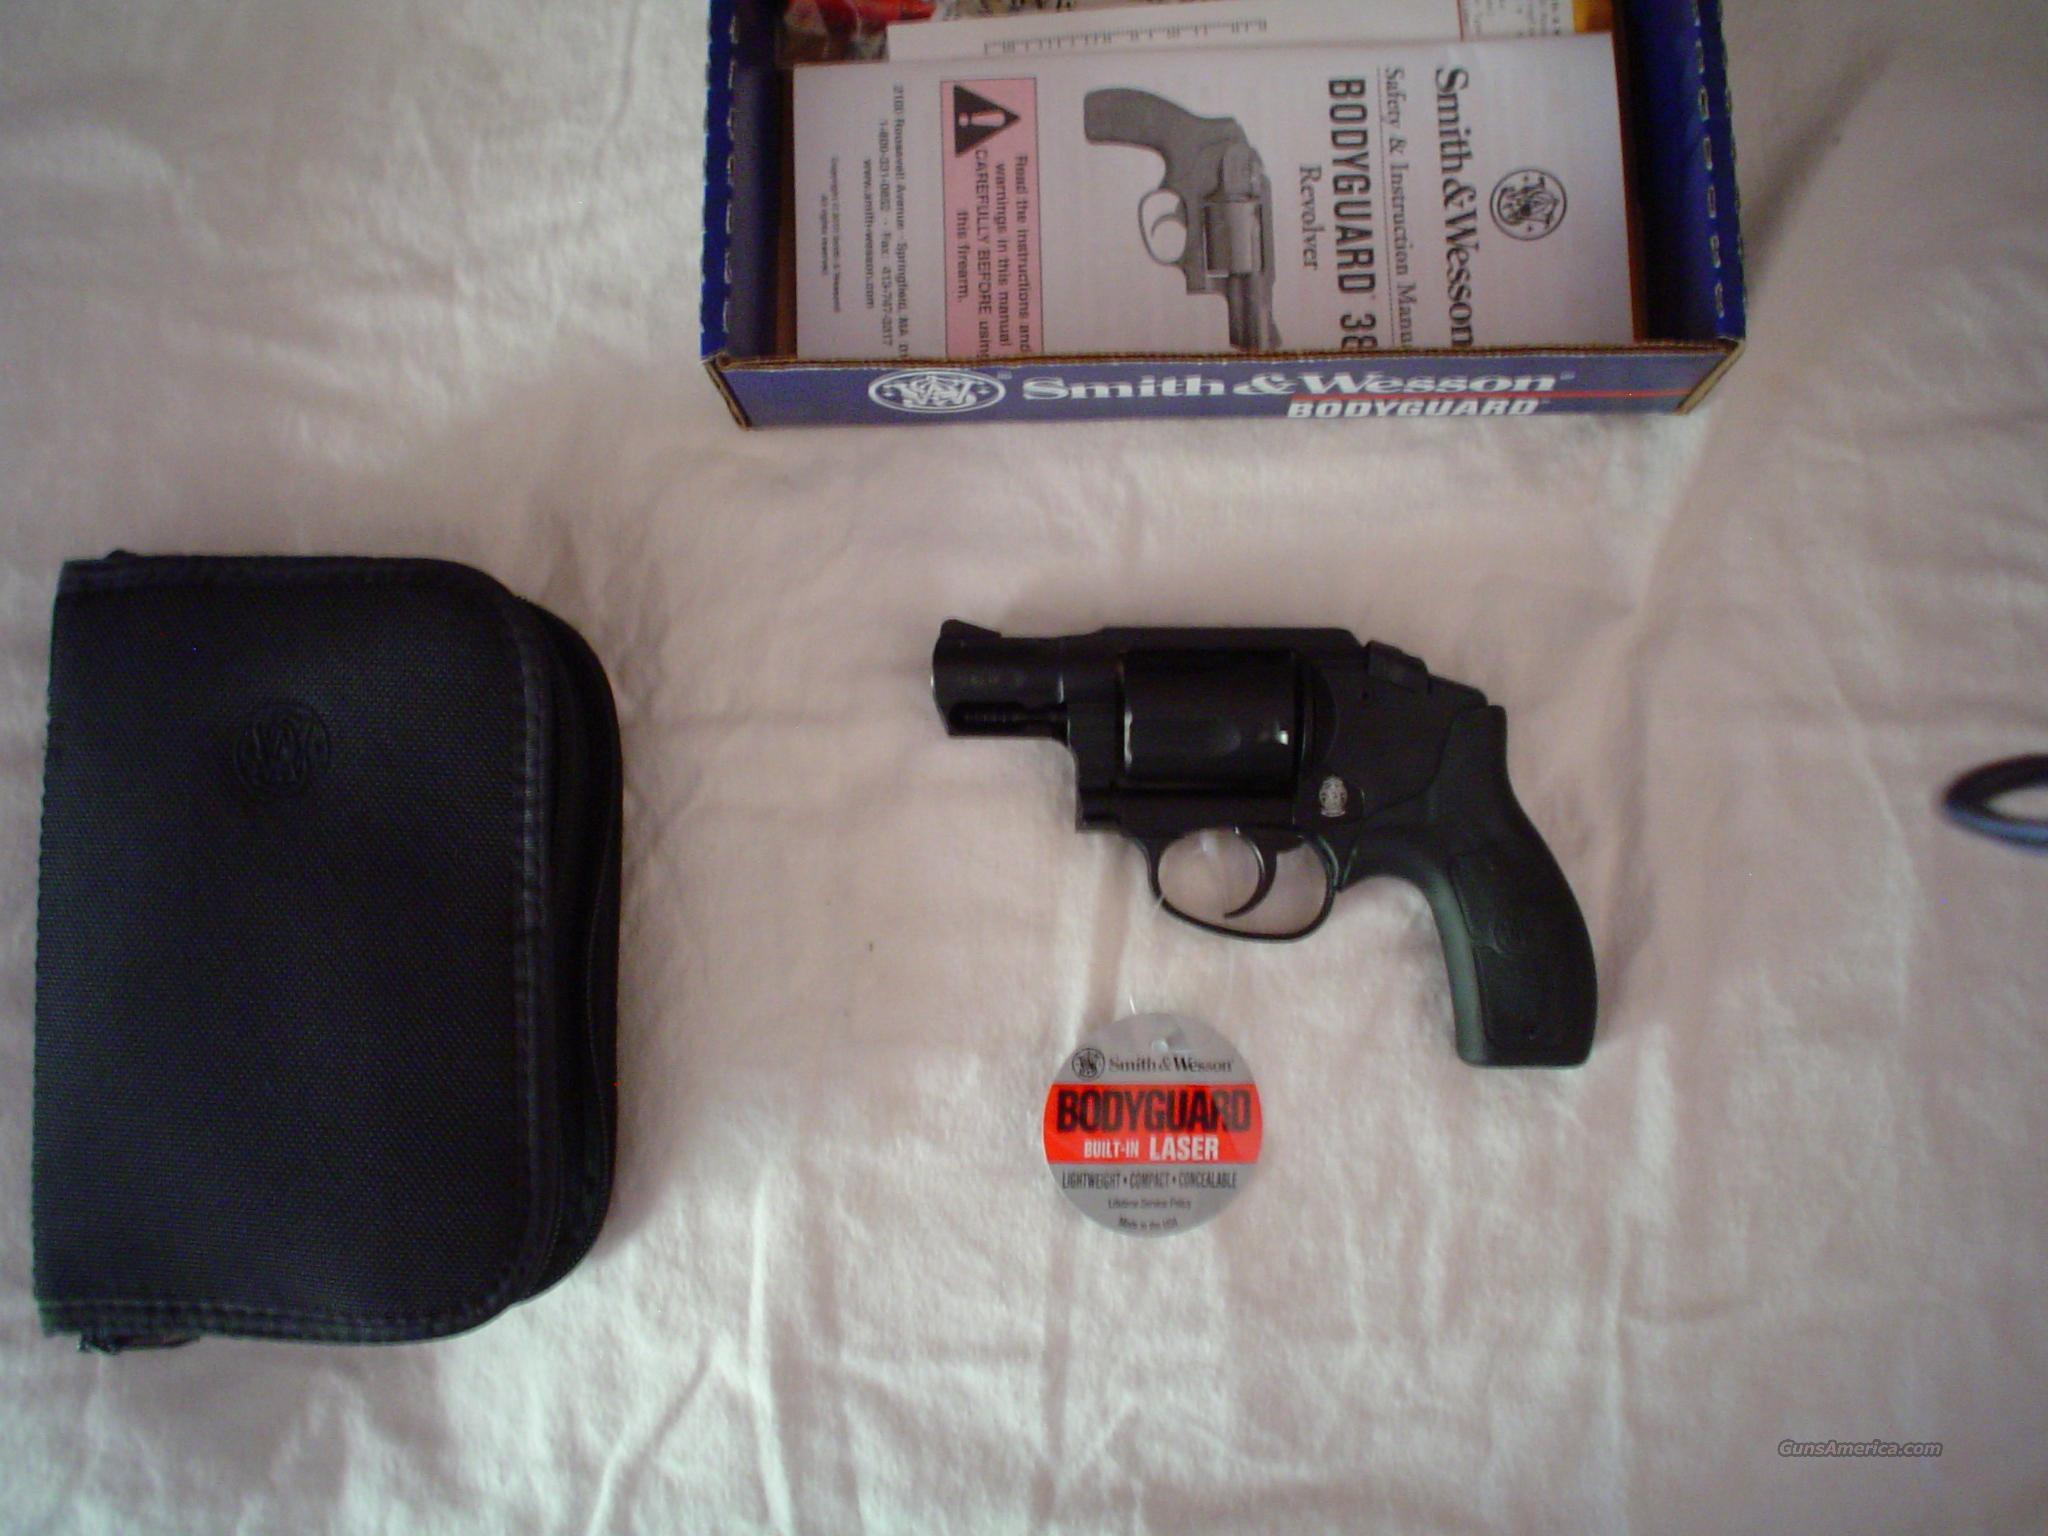 New Smith & Wesson 38 w/laser sight  Guns > Pistols > Smith & Wesson Revolvers > Full Frame Revolver